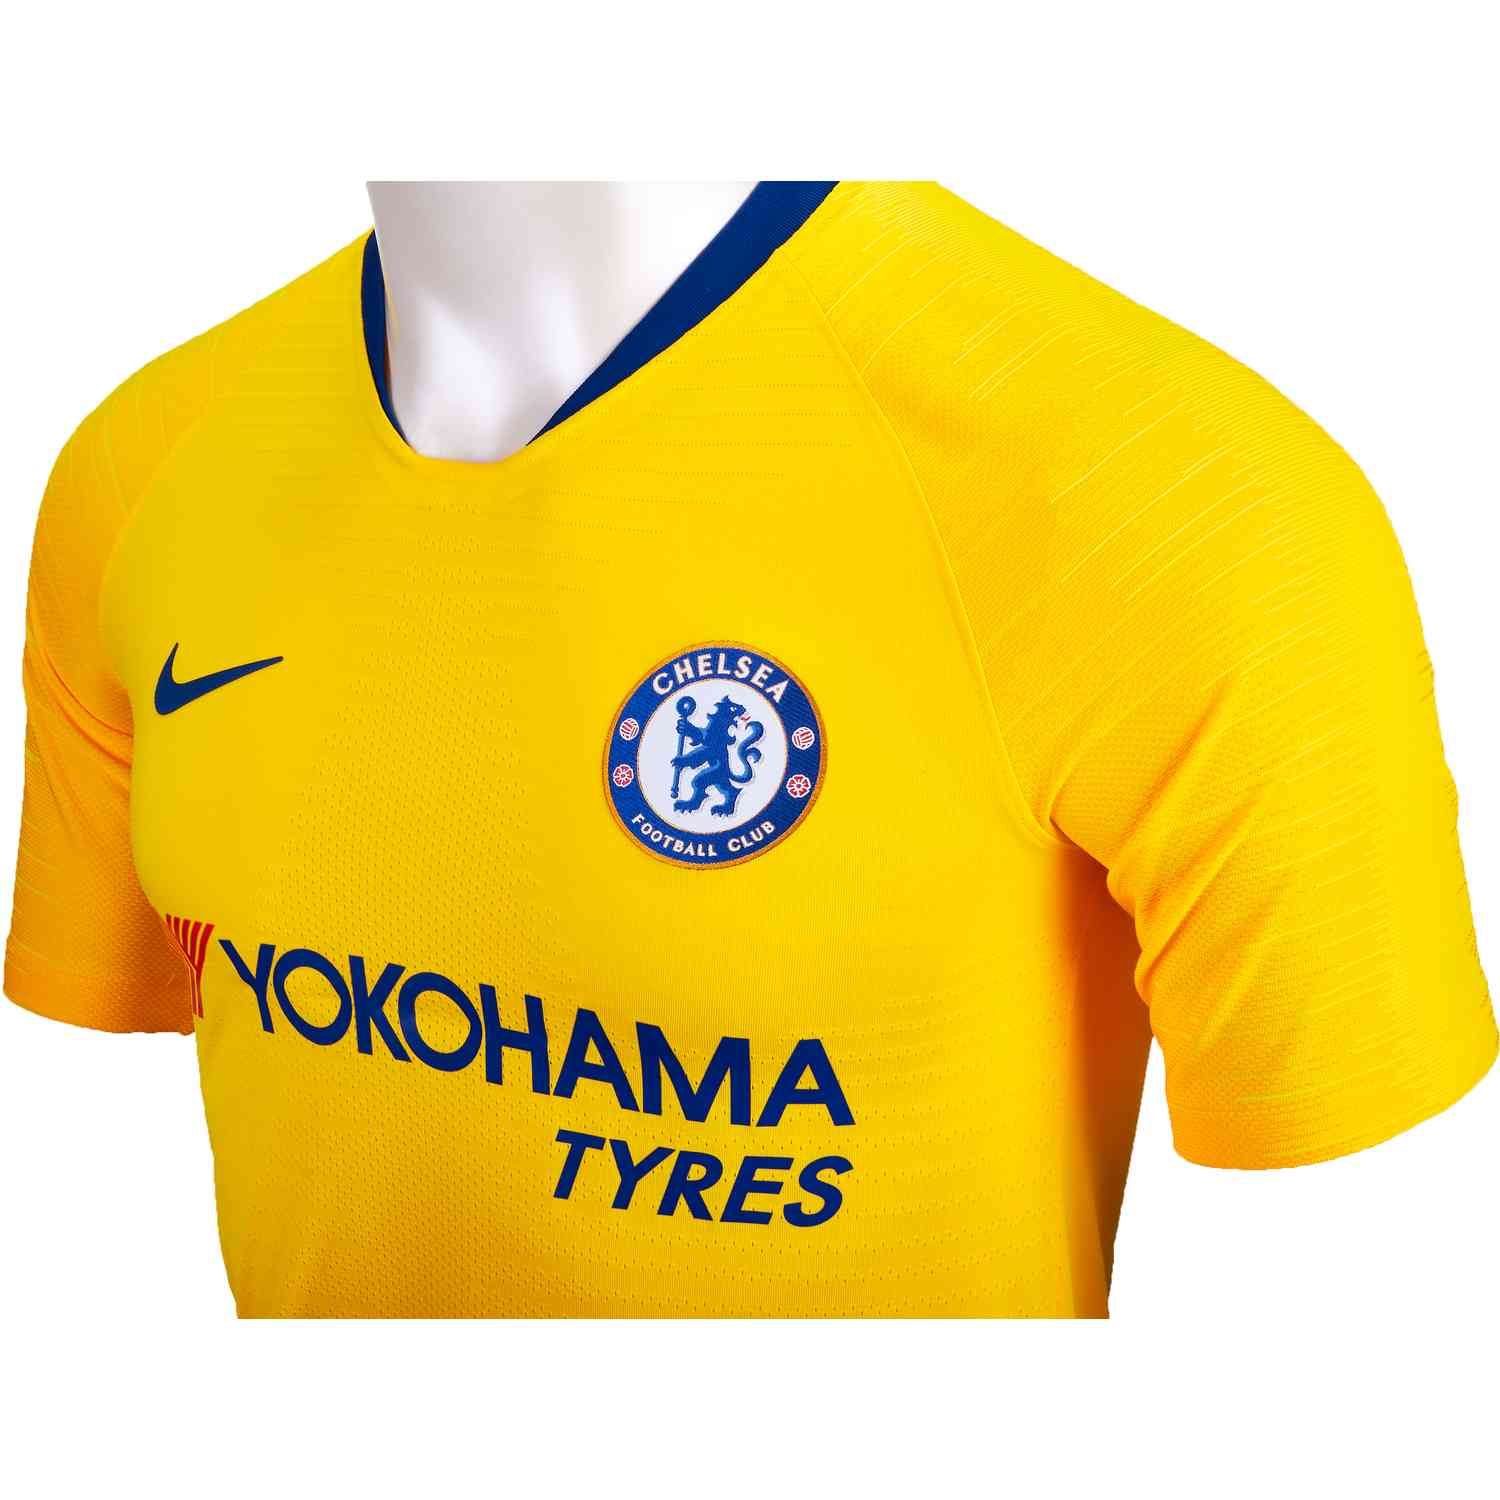 sports shoes bad1e c19d7 2018/19 Nike Chelsea Away Match Jersey - SoccerPro